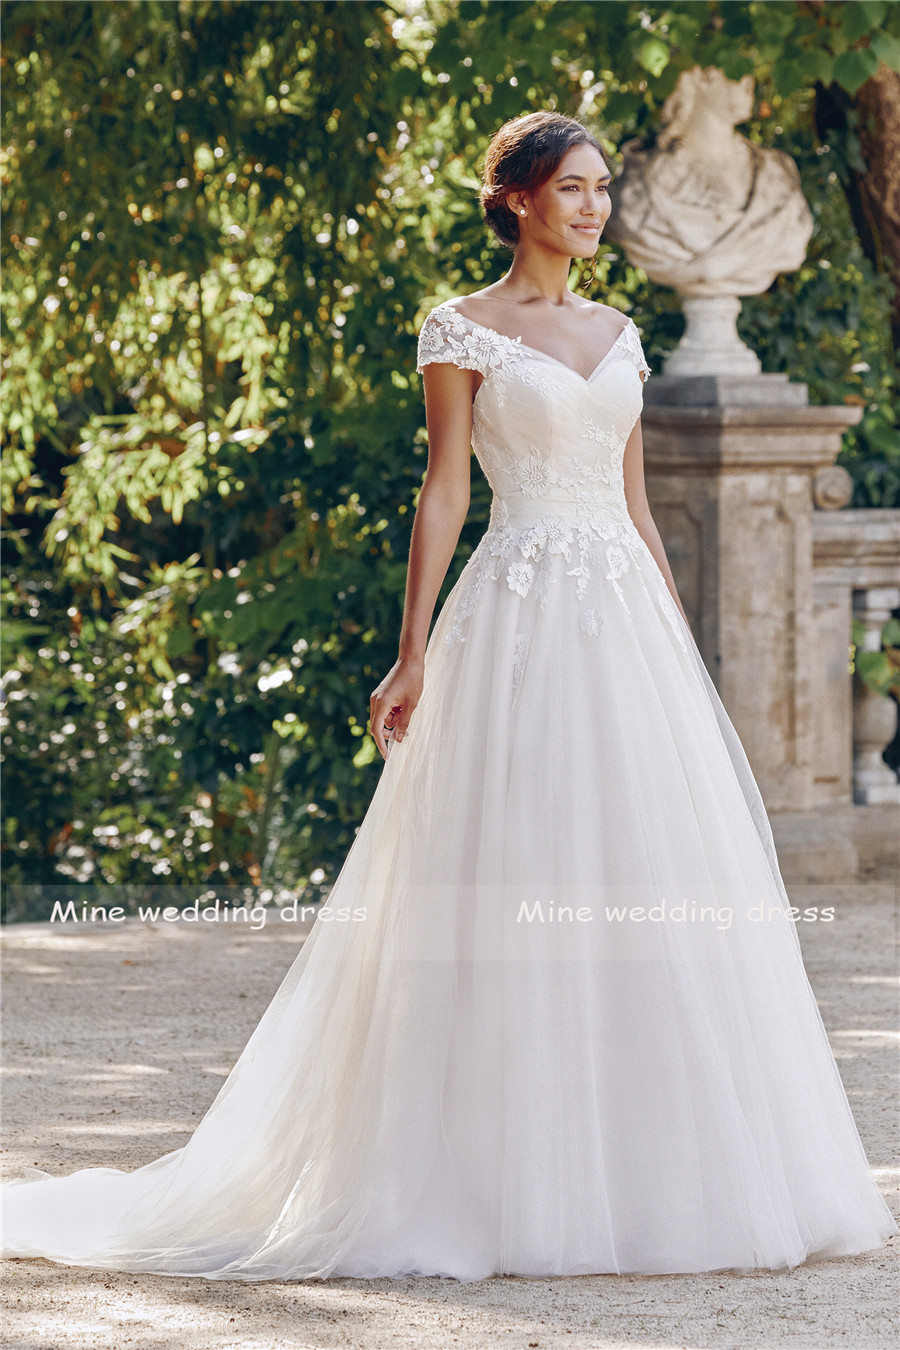 Off the Shoulder Ball Gown with Ruched Bodice Embroidered Lace V-neck Wedding Dress Illusion Back with Button Bridal Gown